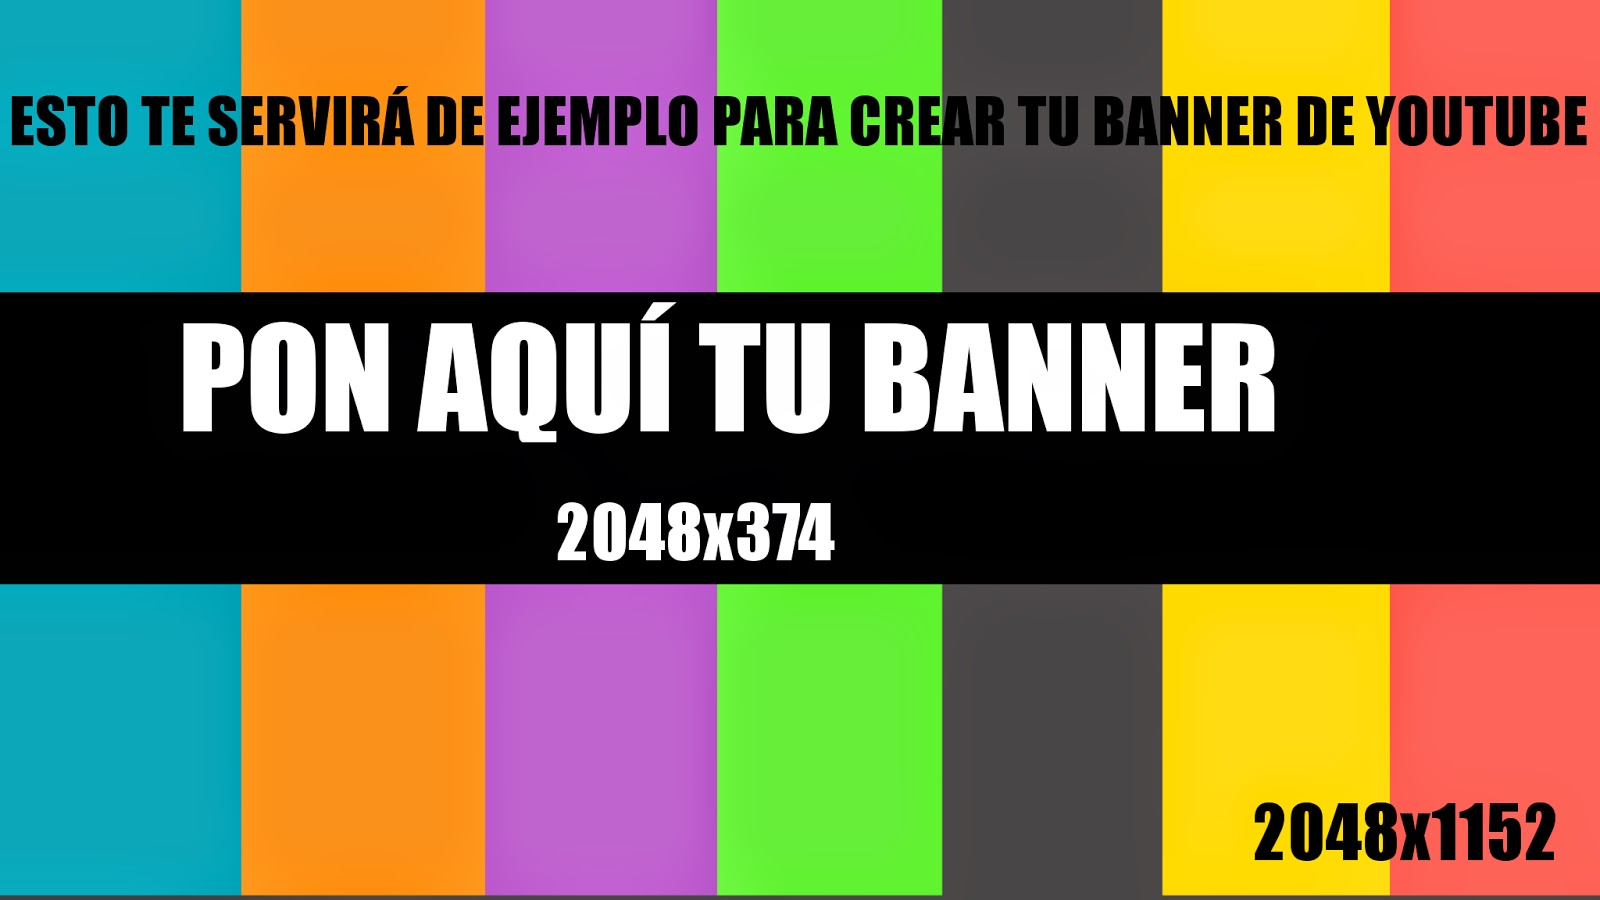 THECOGAMER PÁGINA OFICIAL: YOUTUBE Y SUS BANNERS